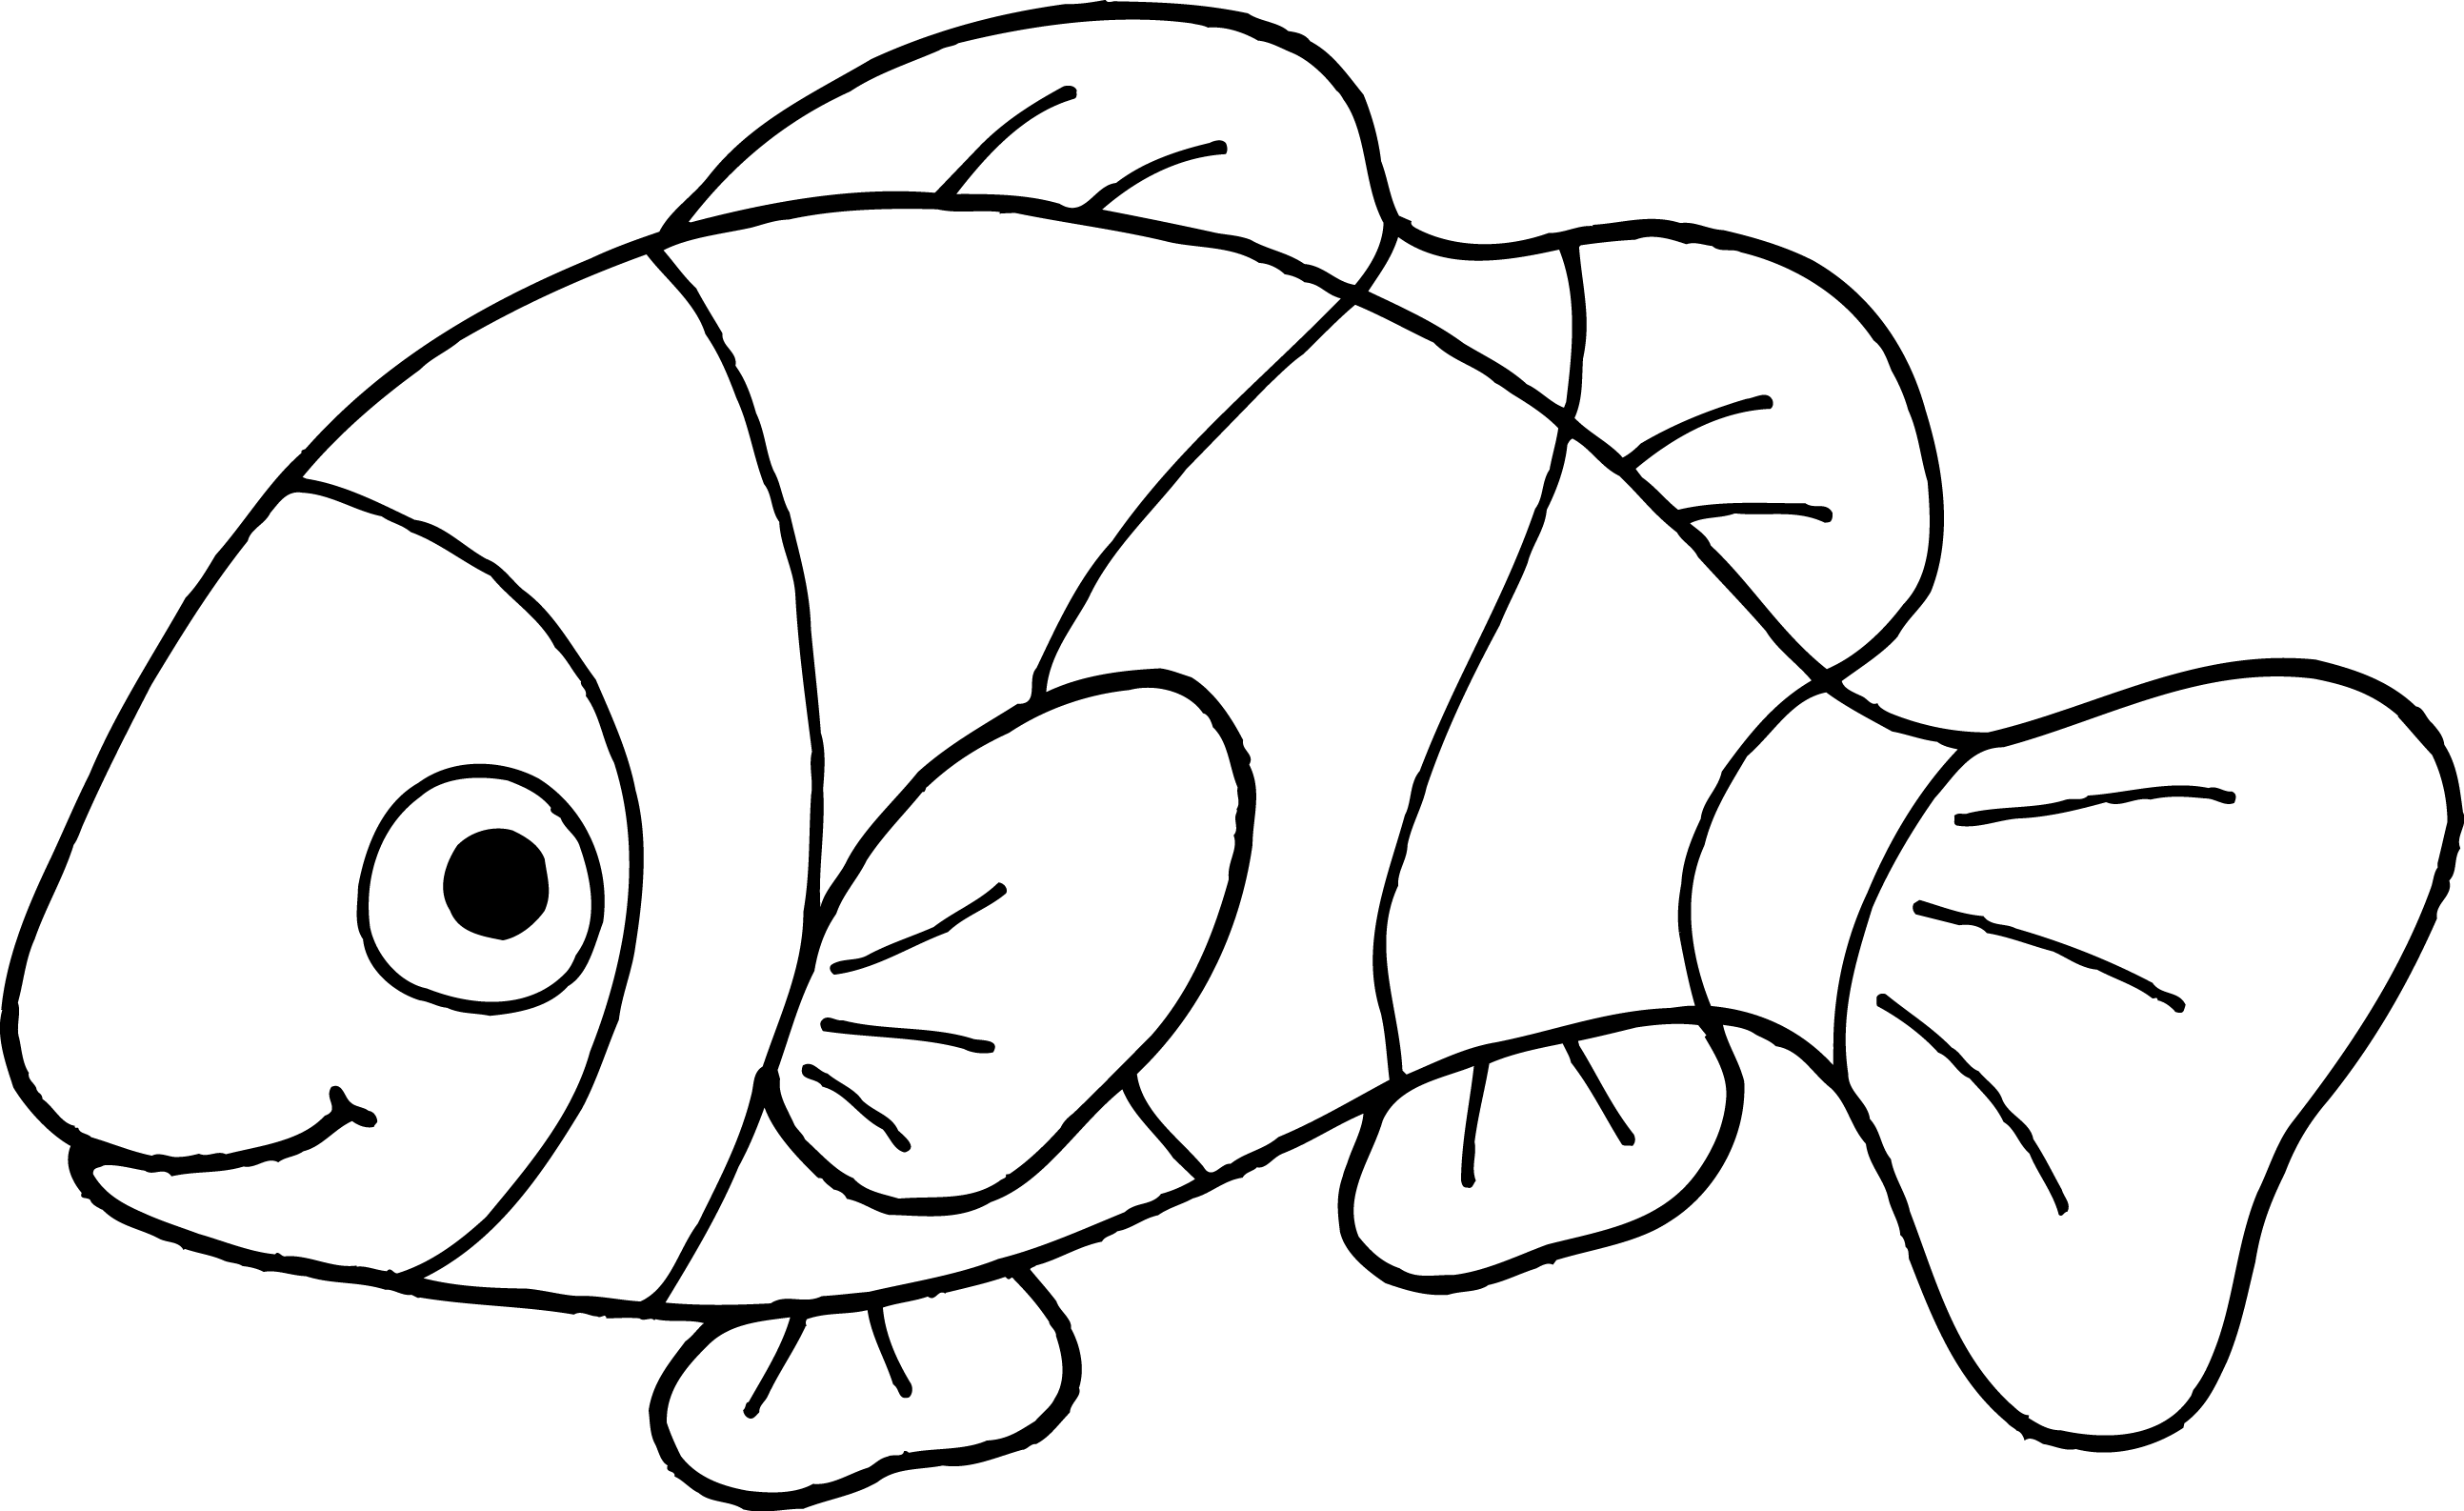 Dig clipart black and white. Tropical island panda free